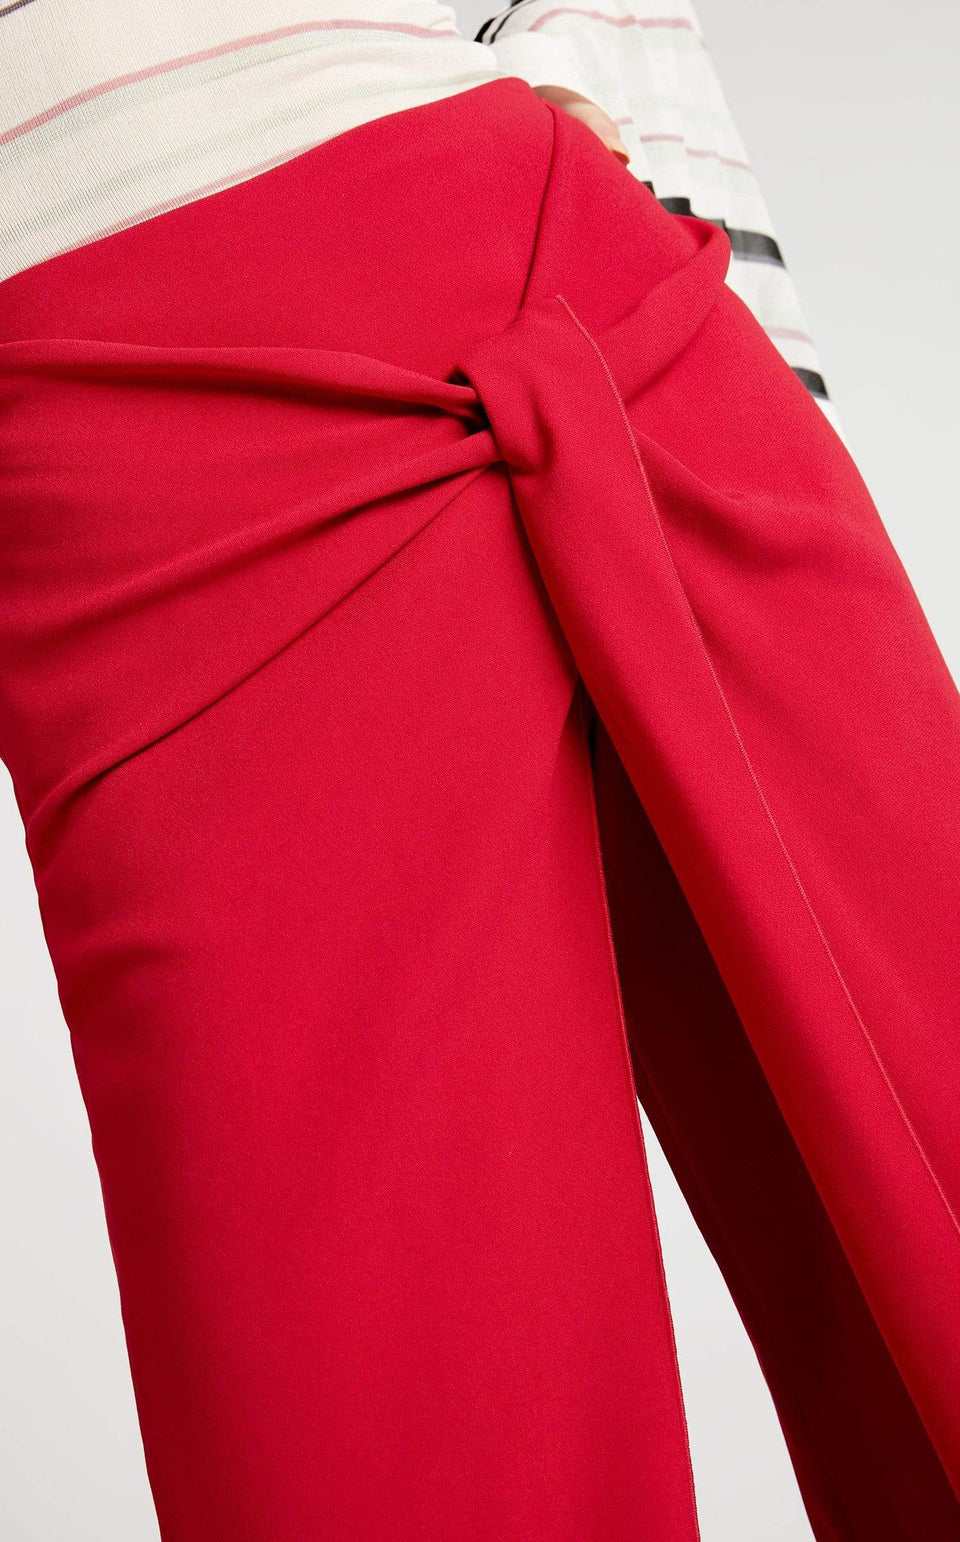 Fenwick Trouser In Ruby from Roland Mouret